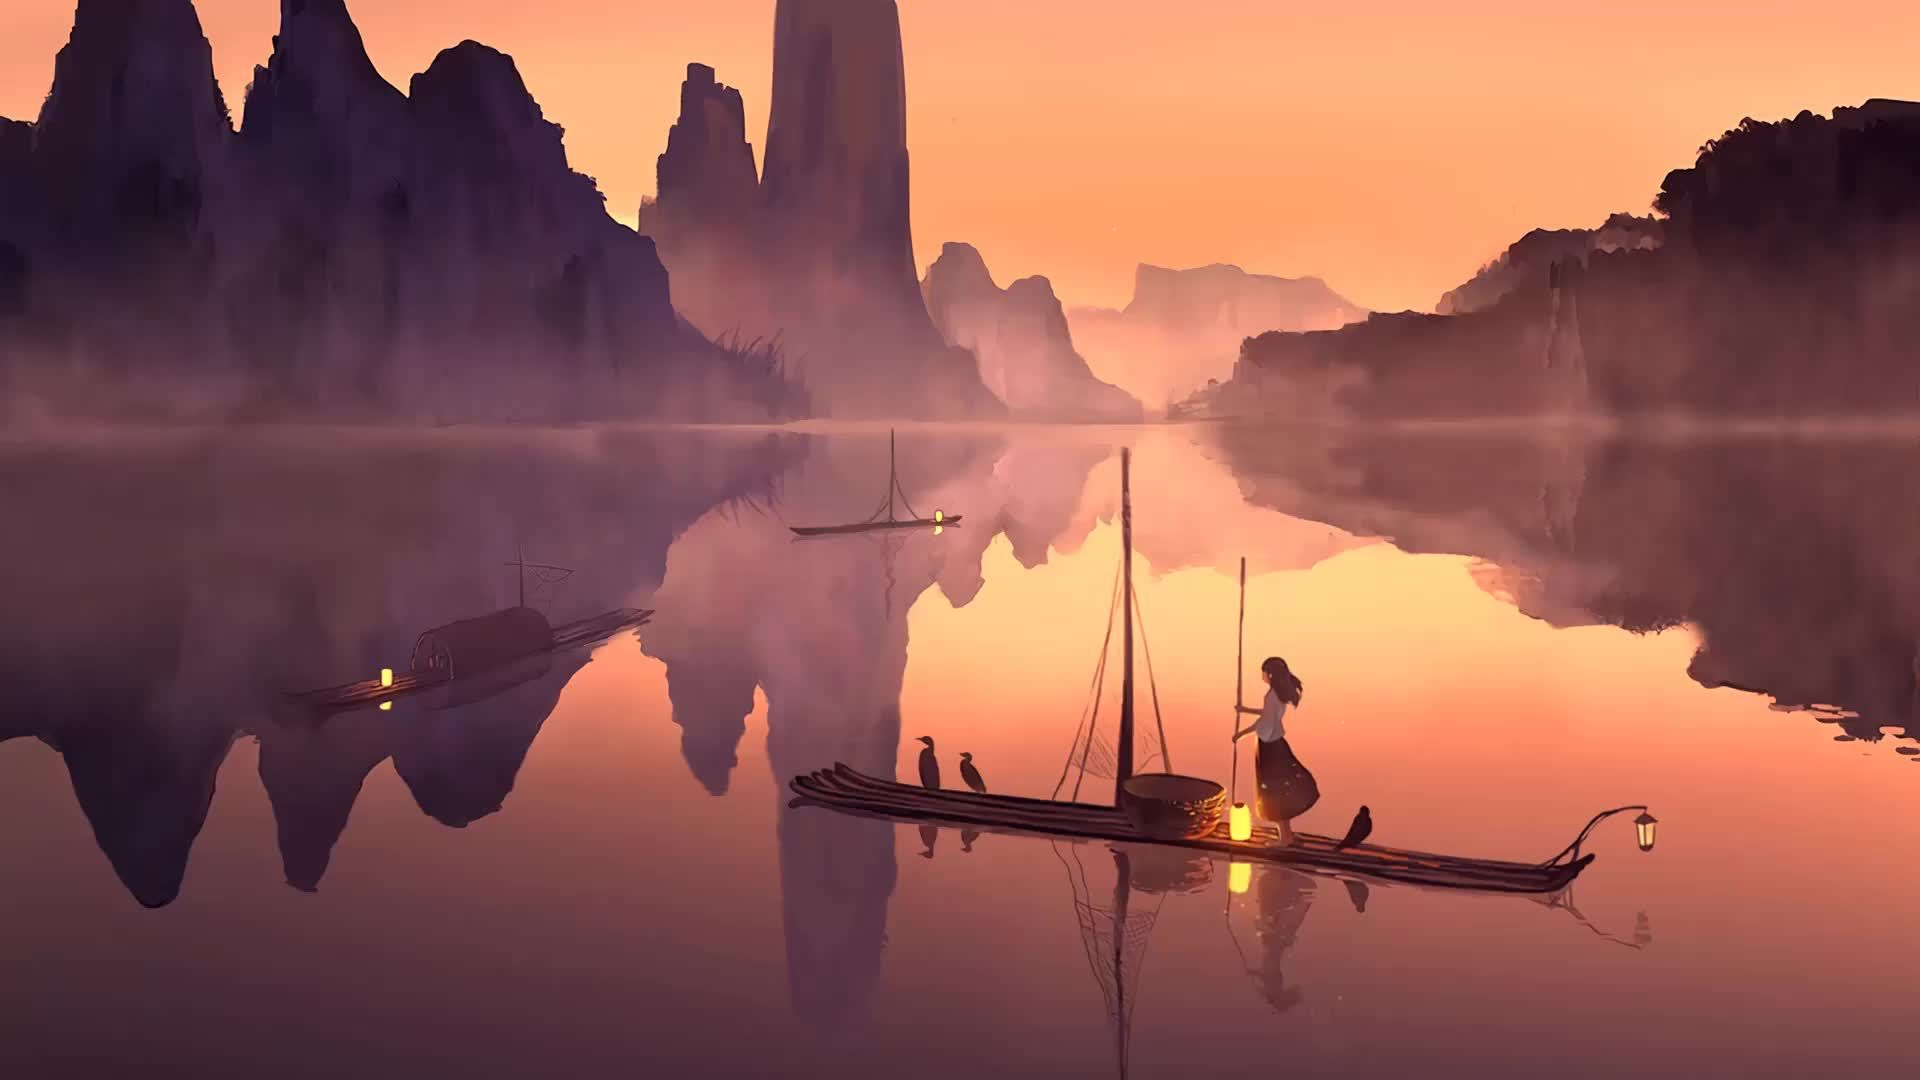 Animated anime girls and chan for system decoration. Serenity Lonely Anime Girl Boat Landscape - Live Wallpaper ...